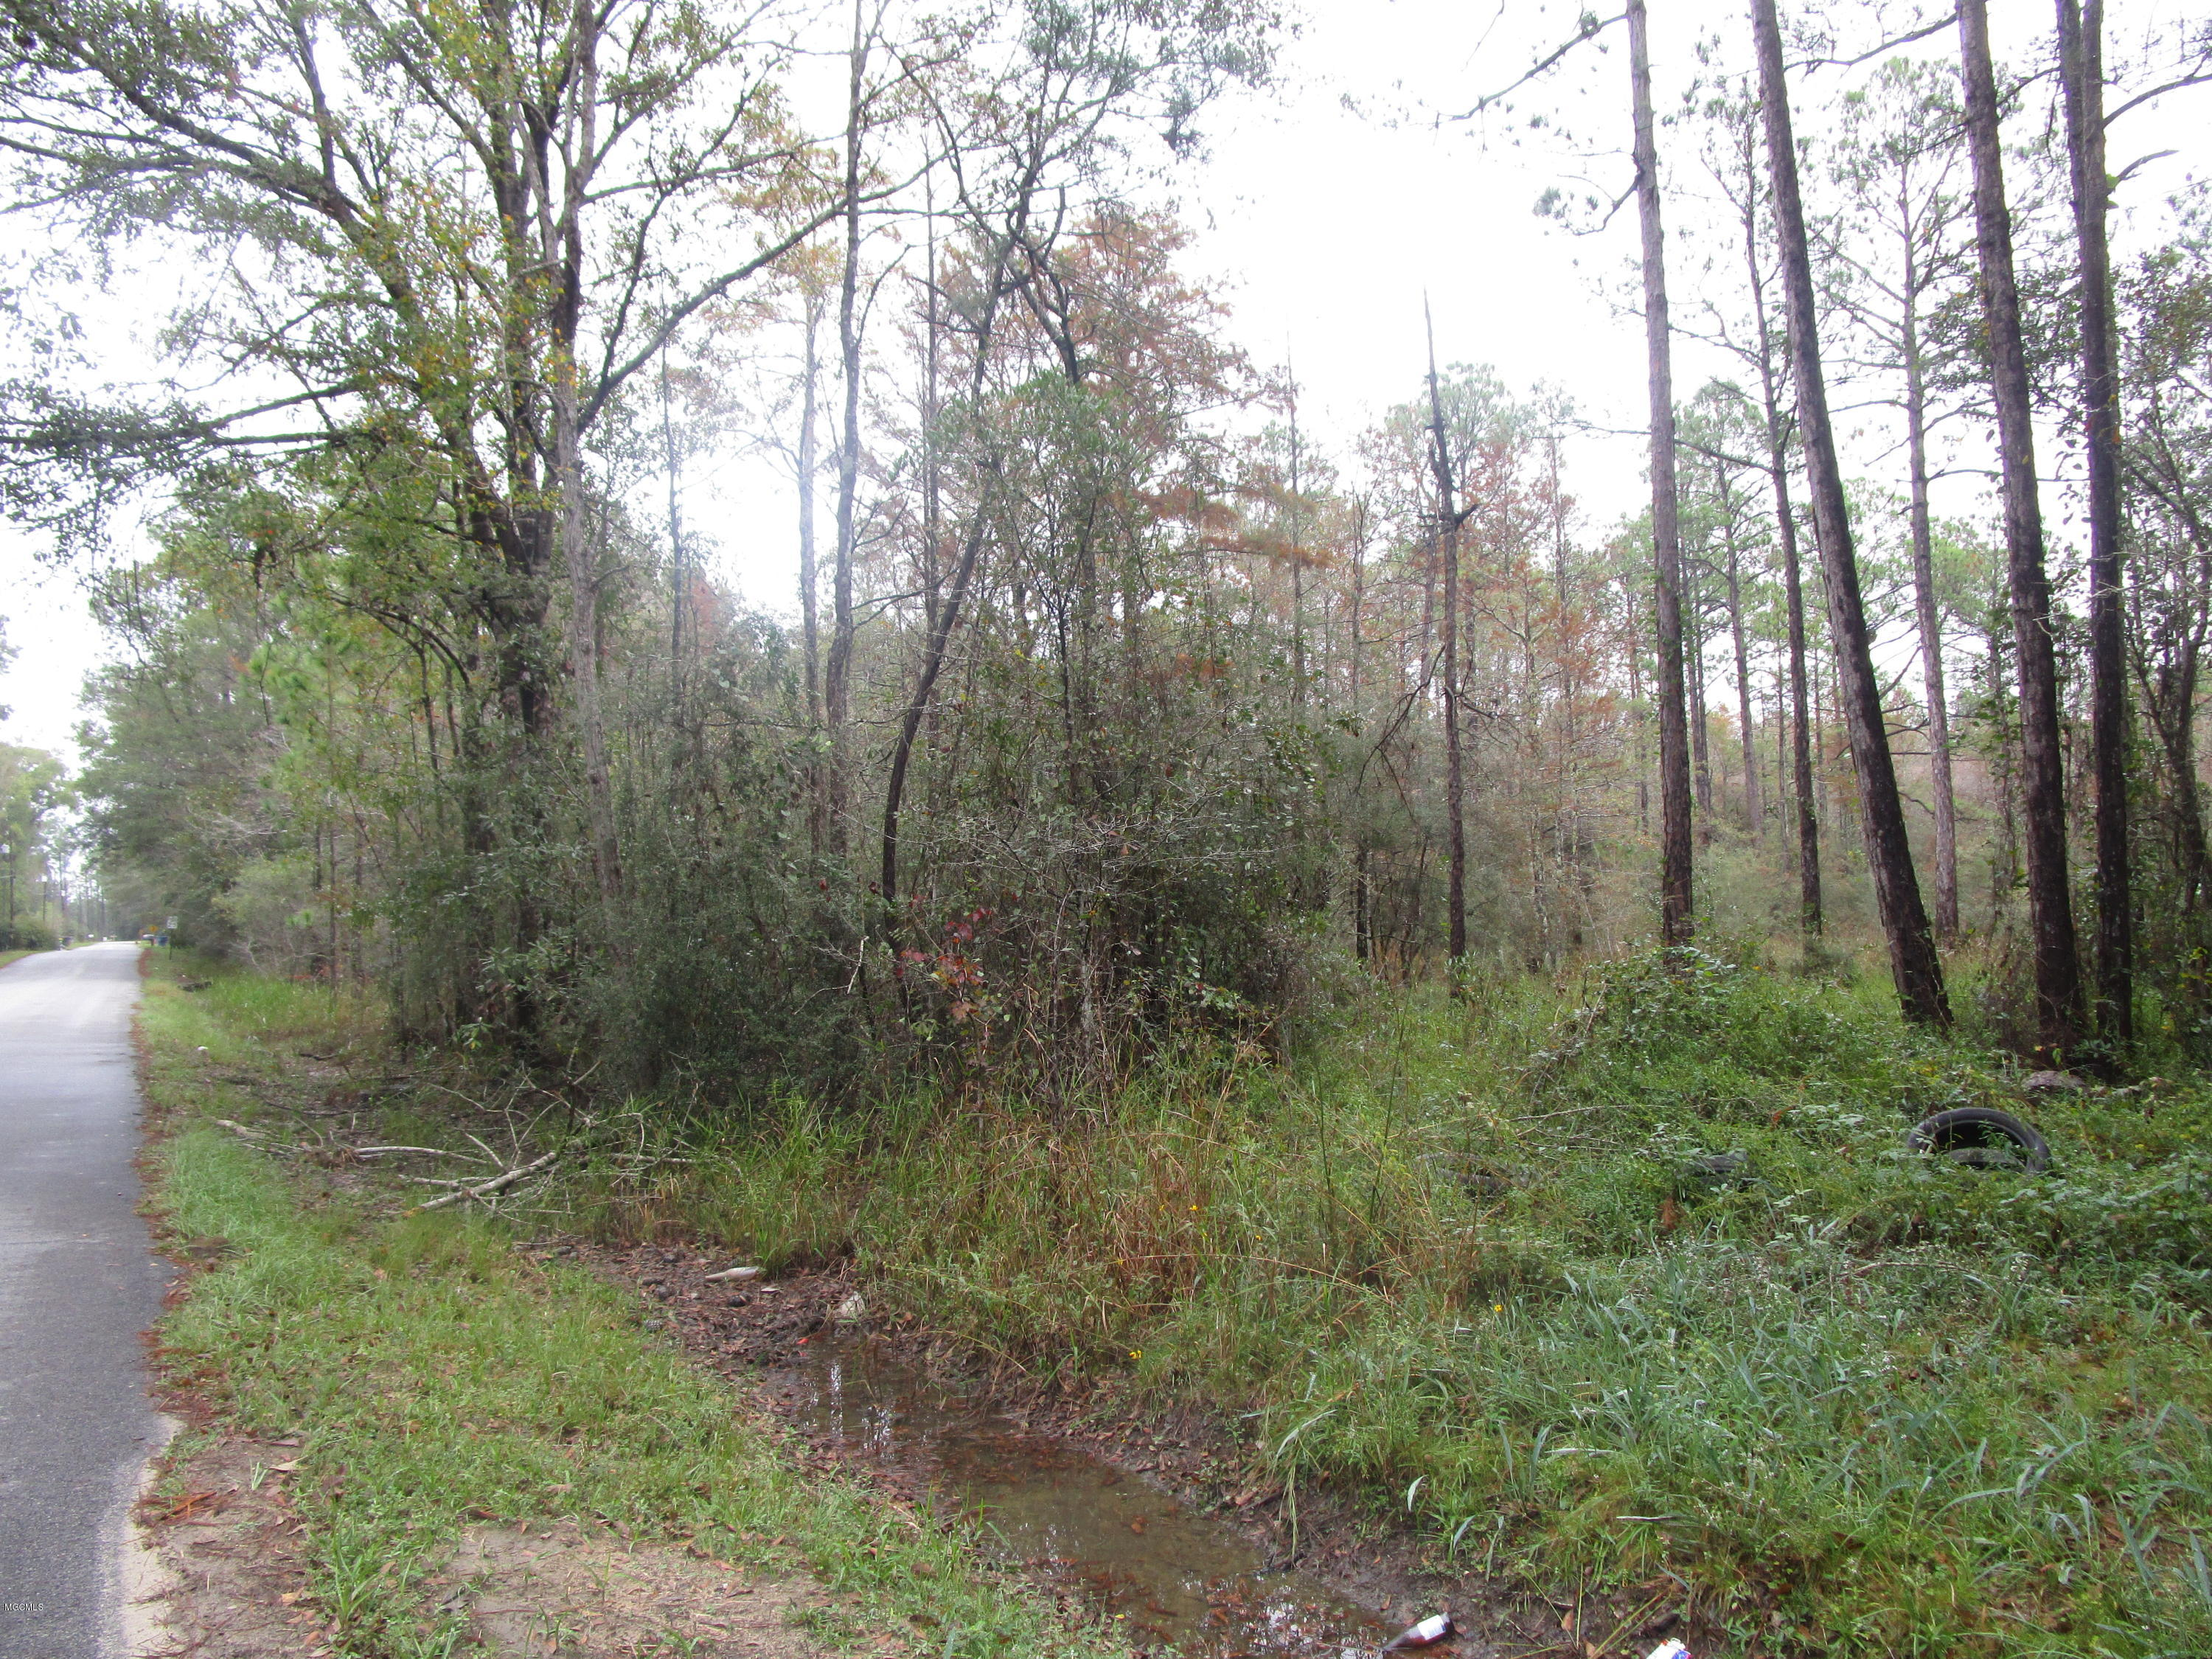 7107 Nutbank Rd, Moss Point, Mississippi 39562, ,Comm/Industrial,For Sale,Nutbank,340866